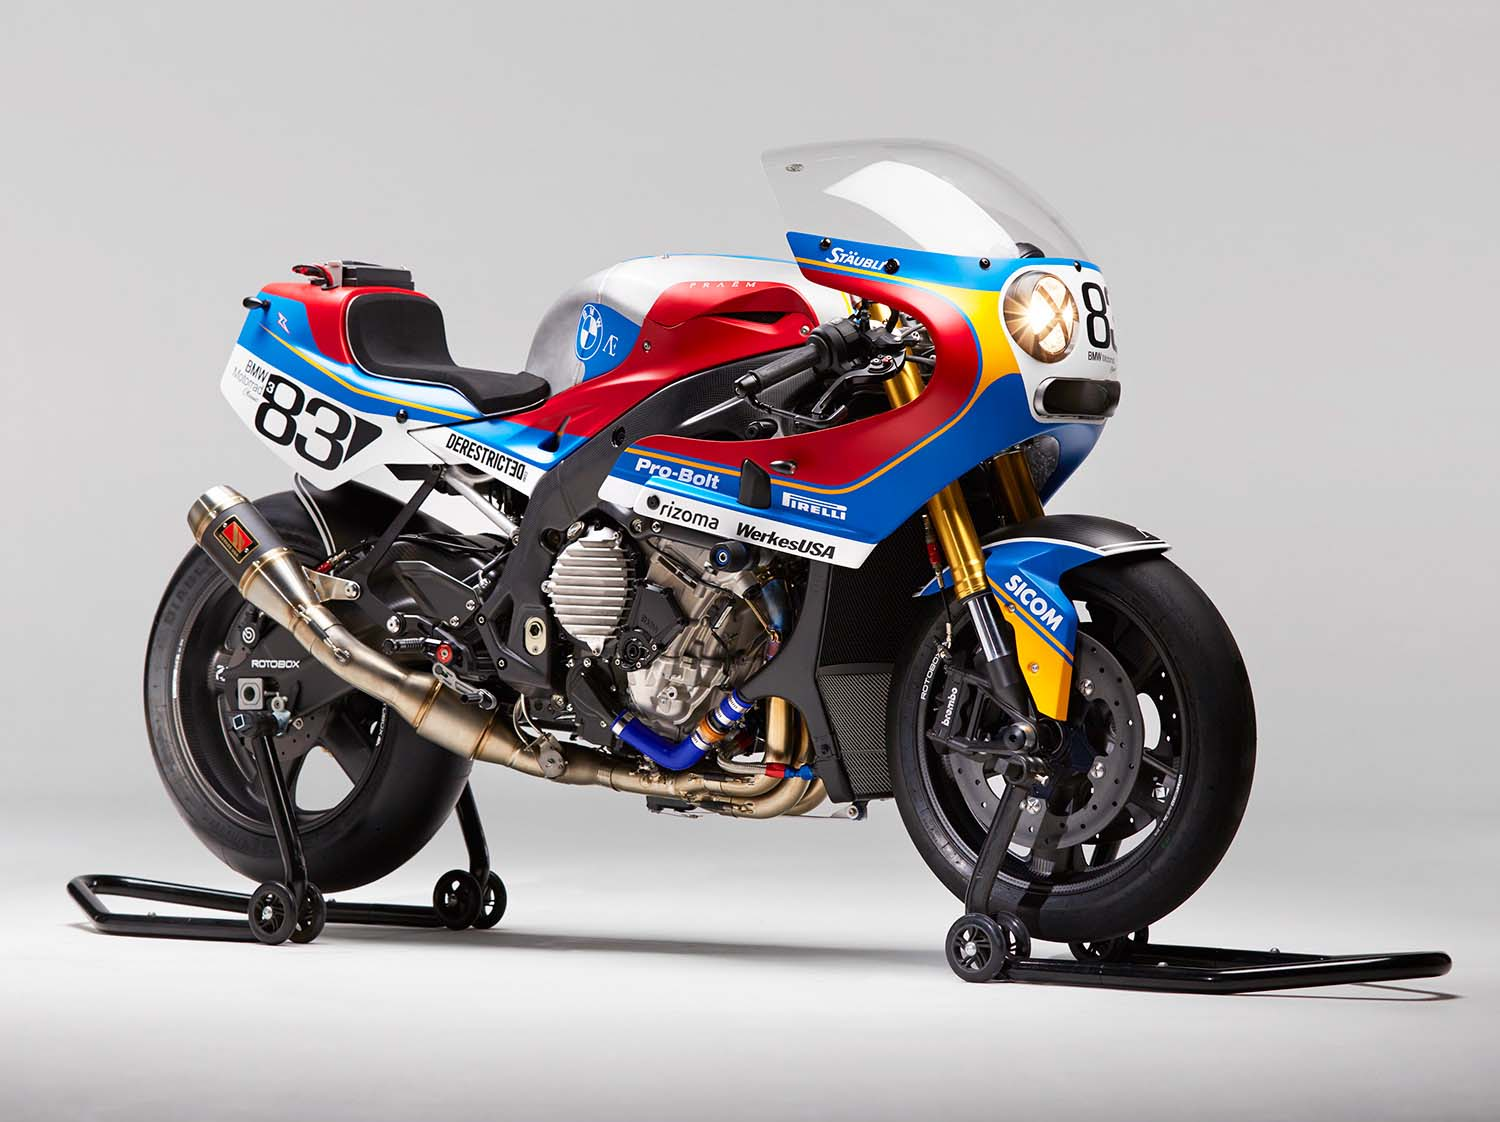 Praëm BMW S1000RR - Getting Modern with Retros Race Bike Photos